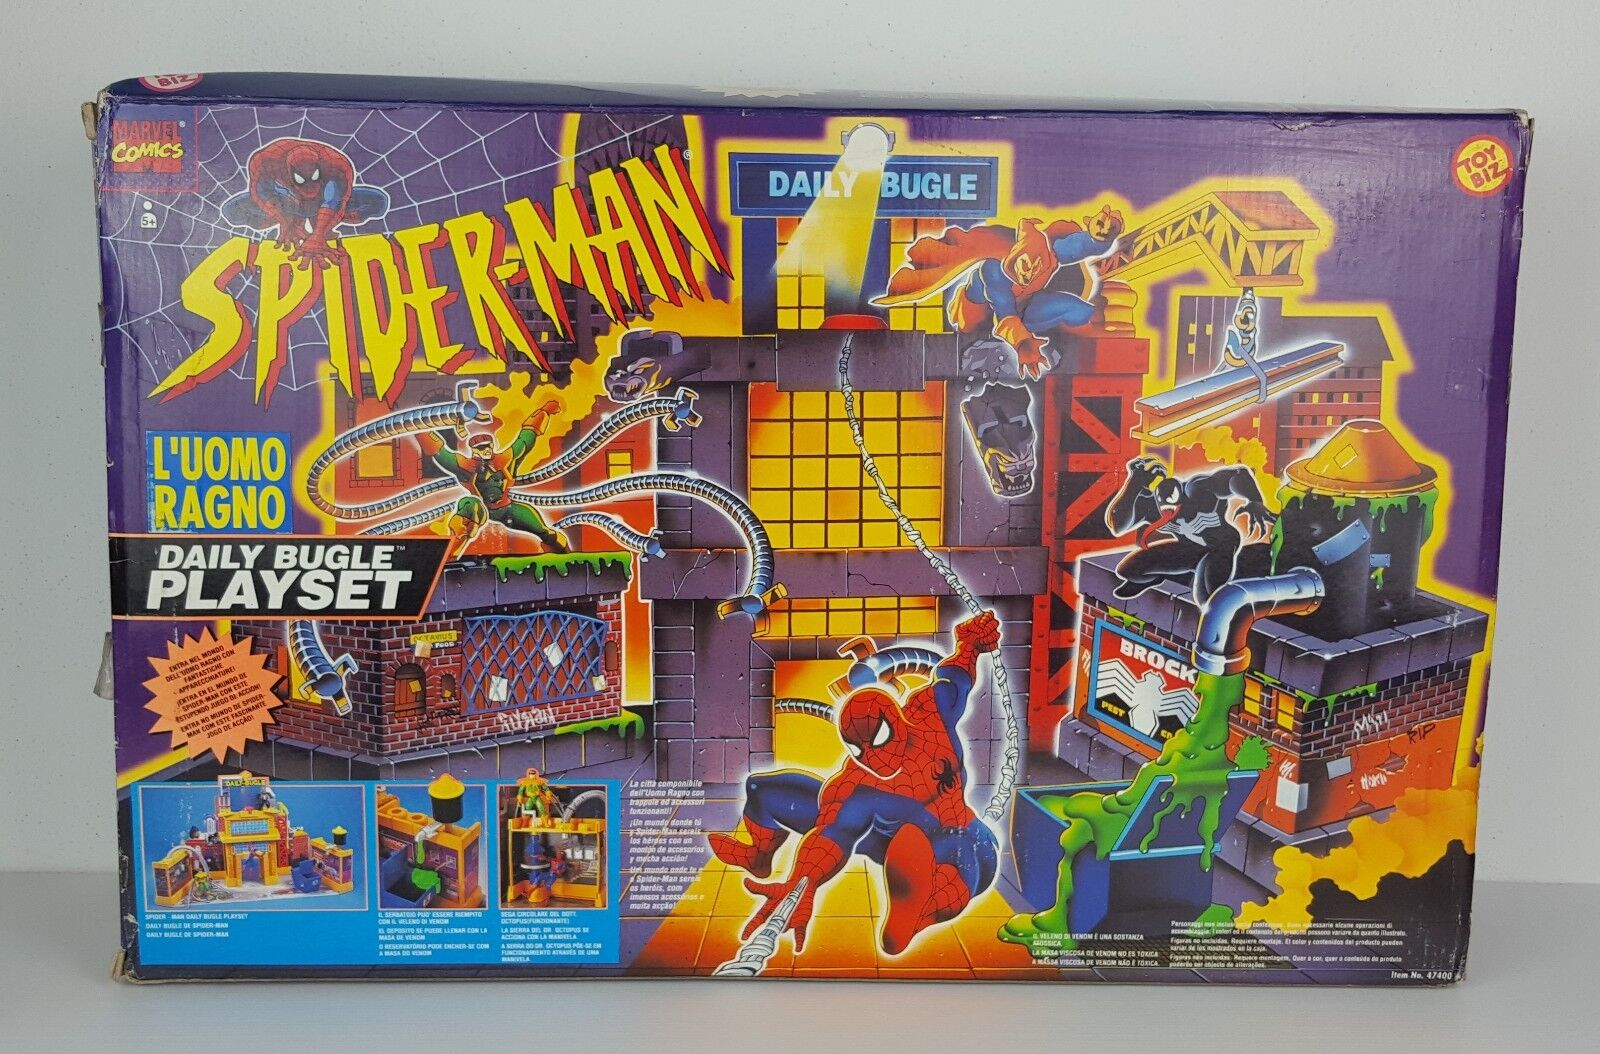 SPIDER-MAN DAILY BUGLE PLAYSET TOYBIZ MARVEL - VINTAGE - NUOVO FACTORY SEALED